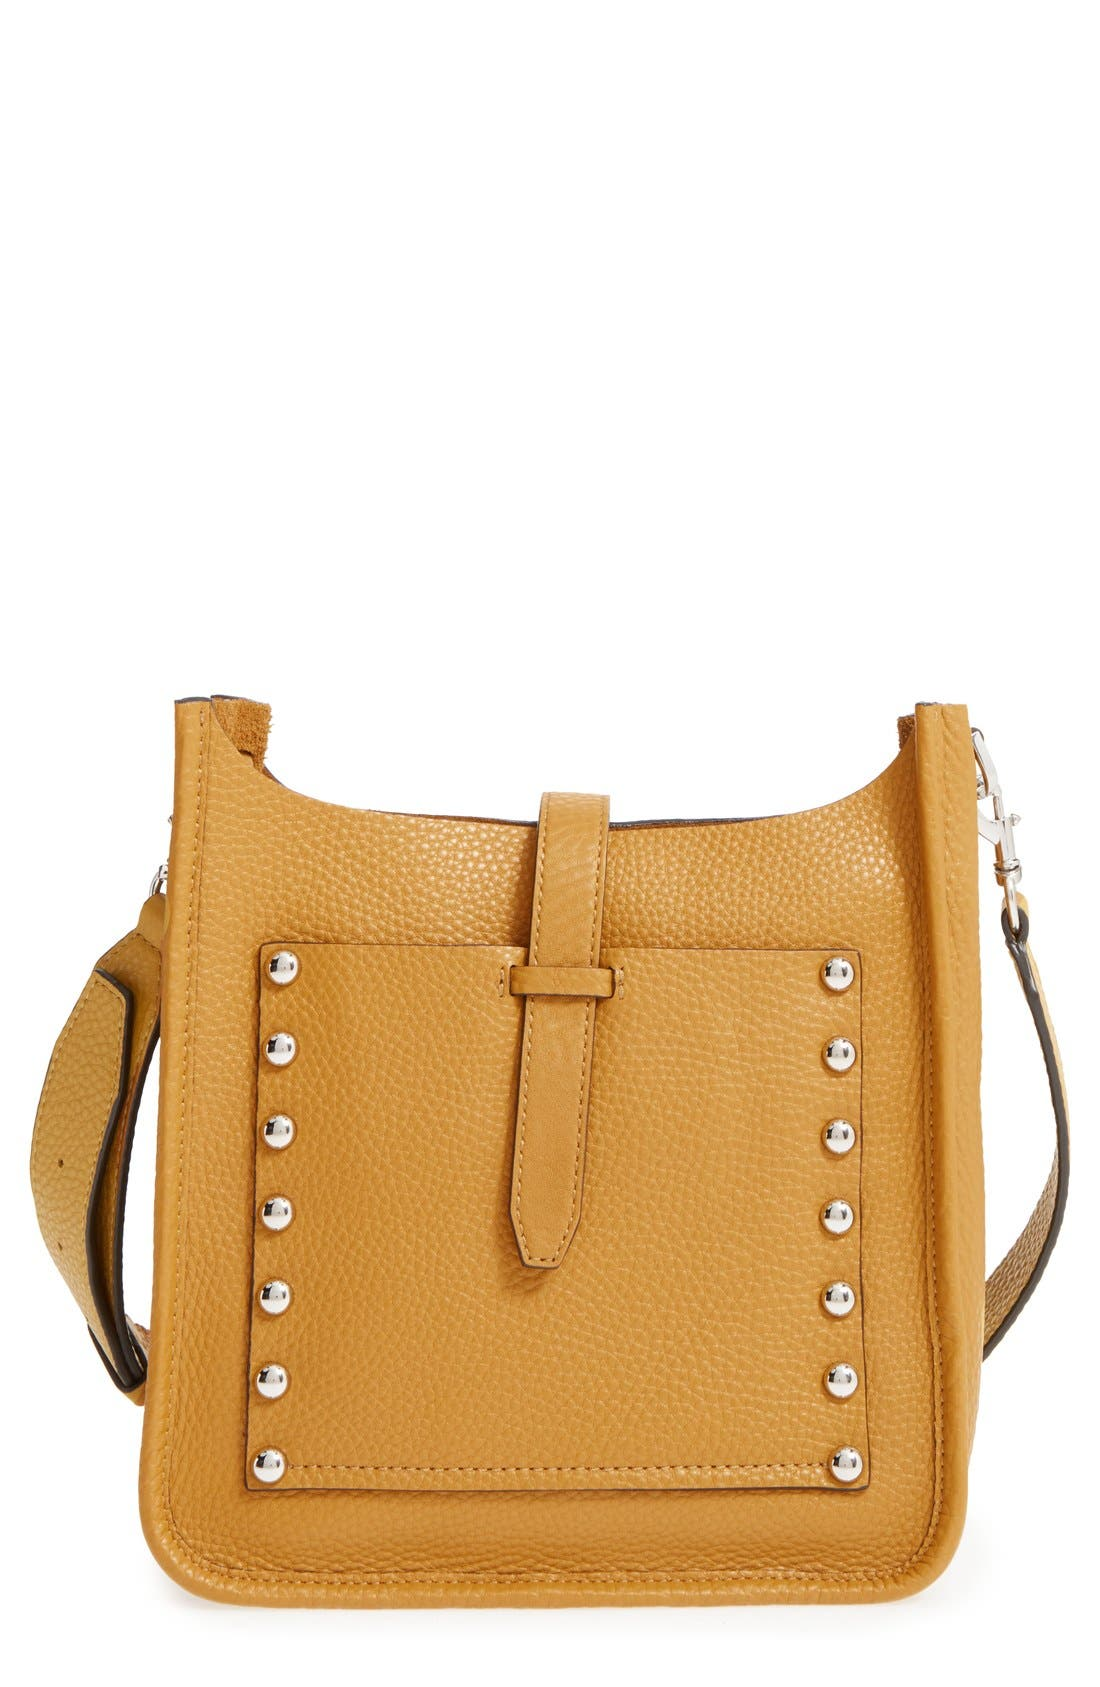 Alternate Image 1 Selected - Rebecca Minkoff 'Small Feed' Bag